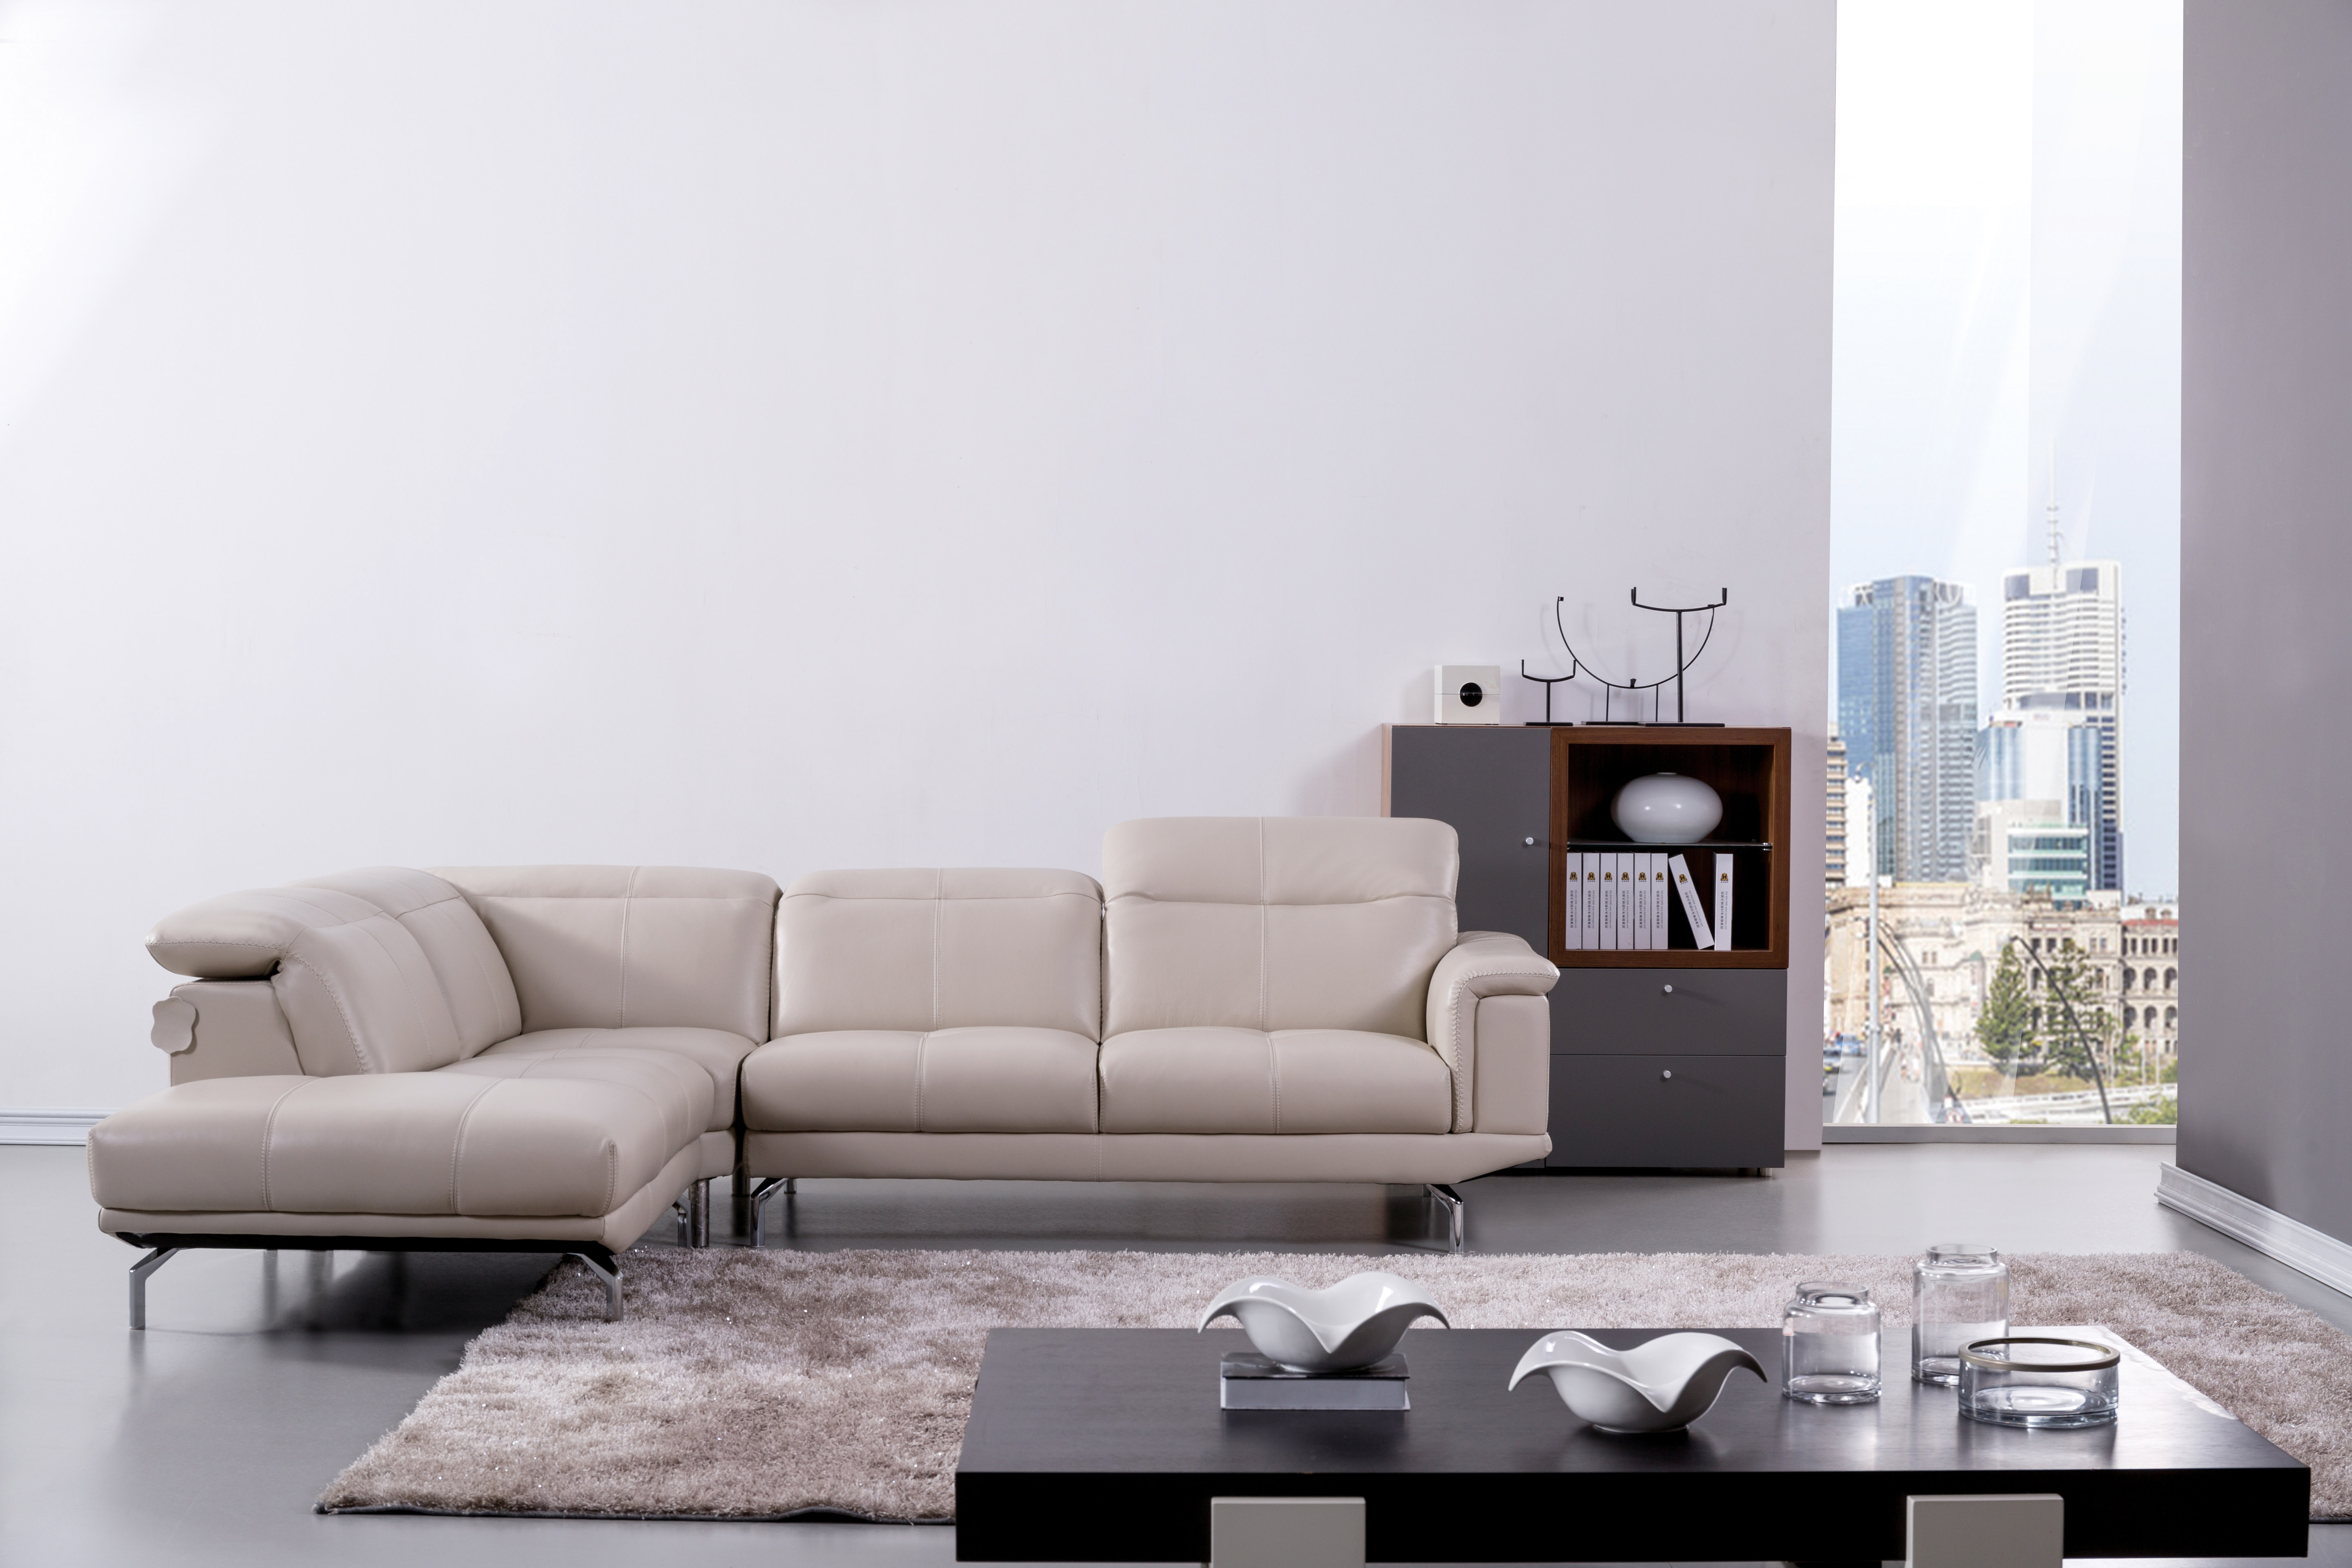 Elegant Beige Leather Sectional Sofa With Soft Appearance